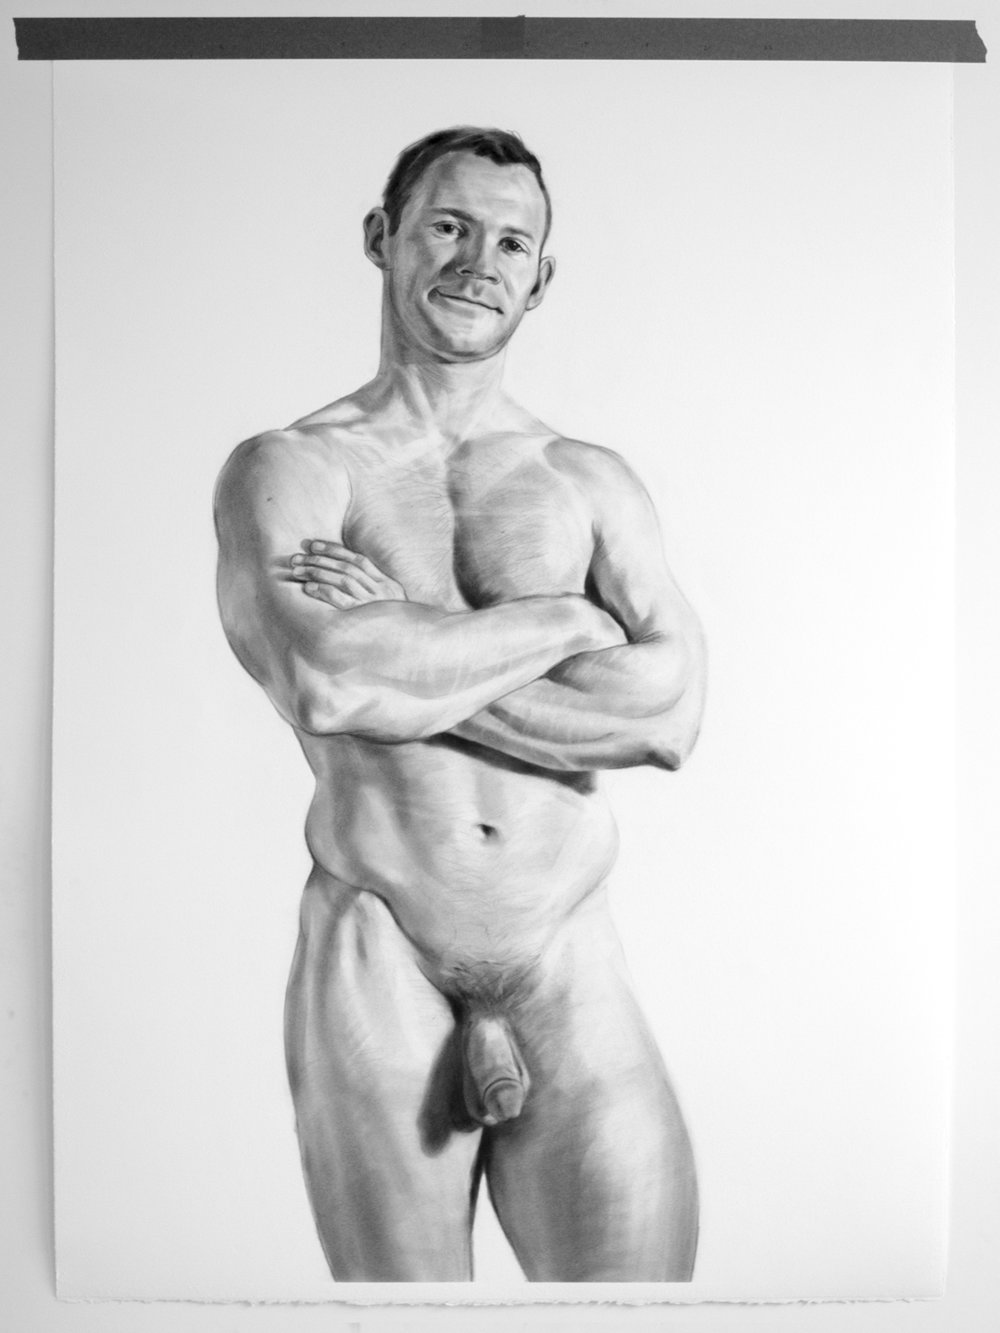 Eddie , 28x40 inches, pencil. Photo captured from a live session and drawing was completed over a one month period.